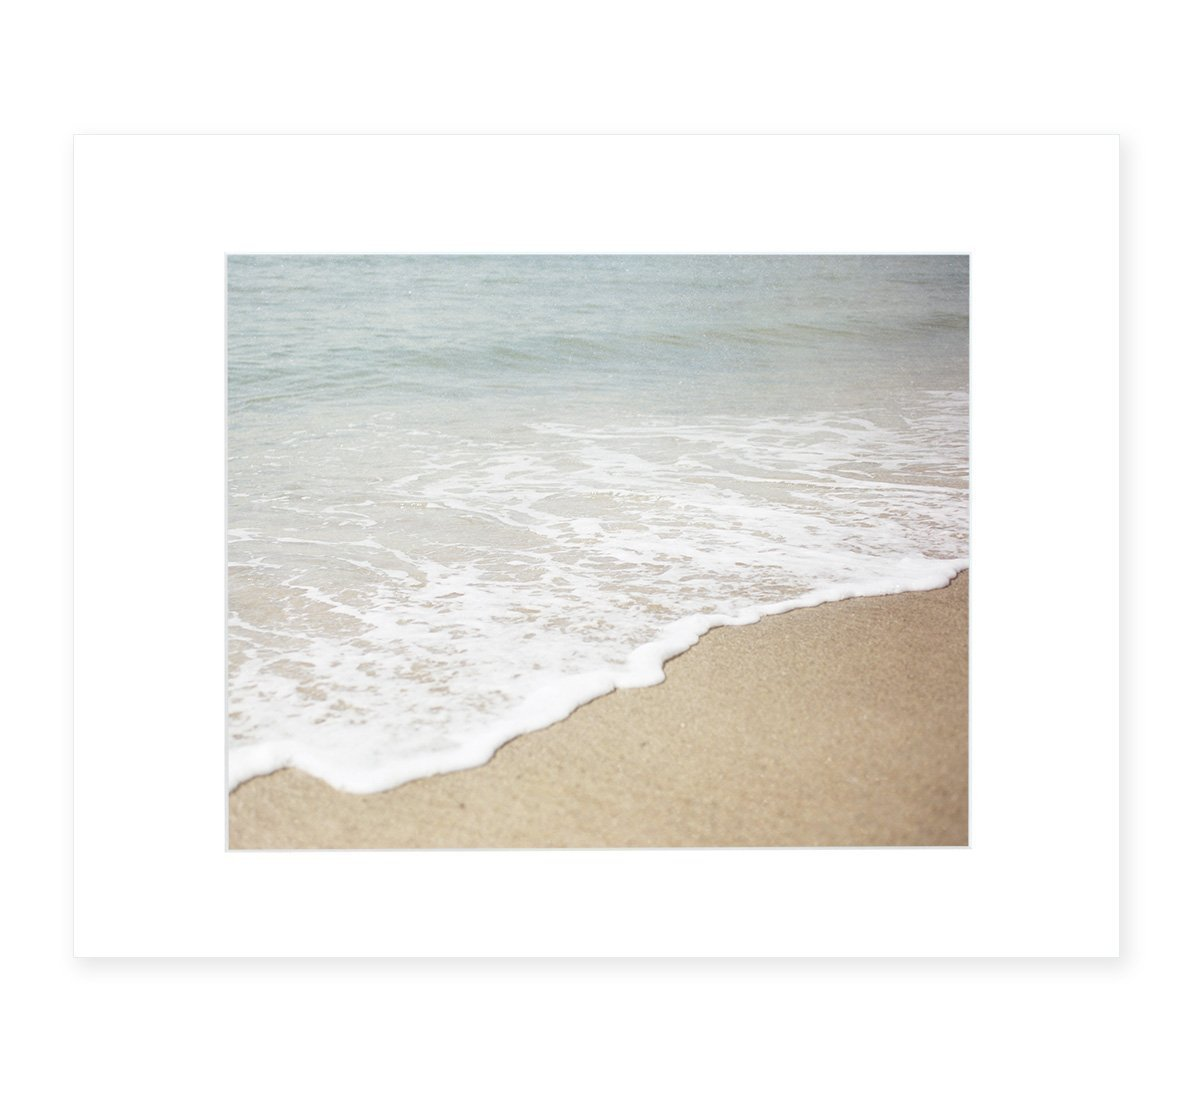 Beach Wall Art, Waves Foaming Ocean Picture, California Coastal Decor, 8x10 Matted Photographic Print (fits 11x14 frame) 'Chasing Surf'